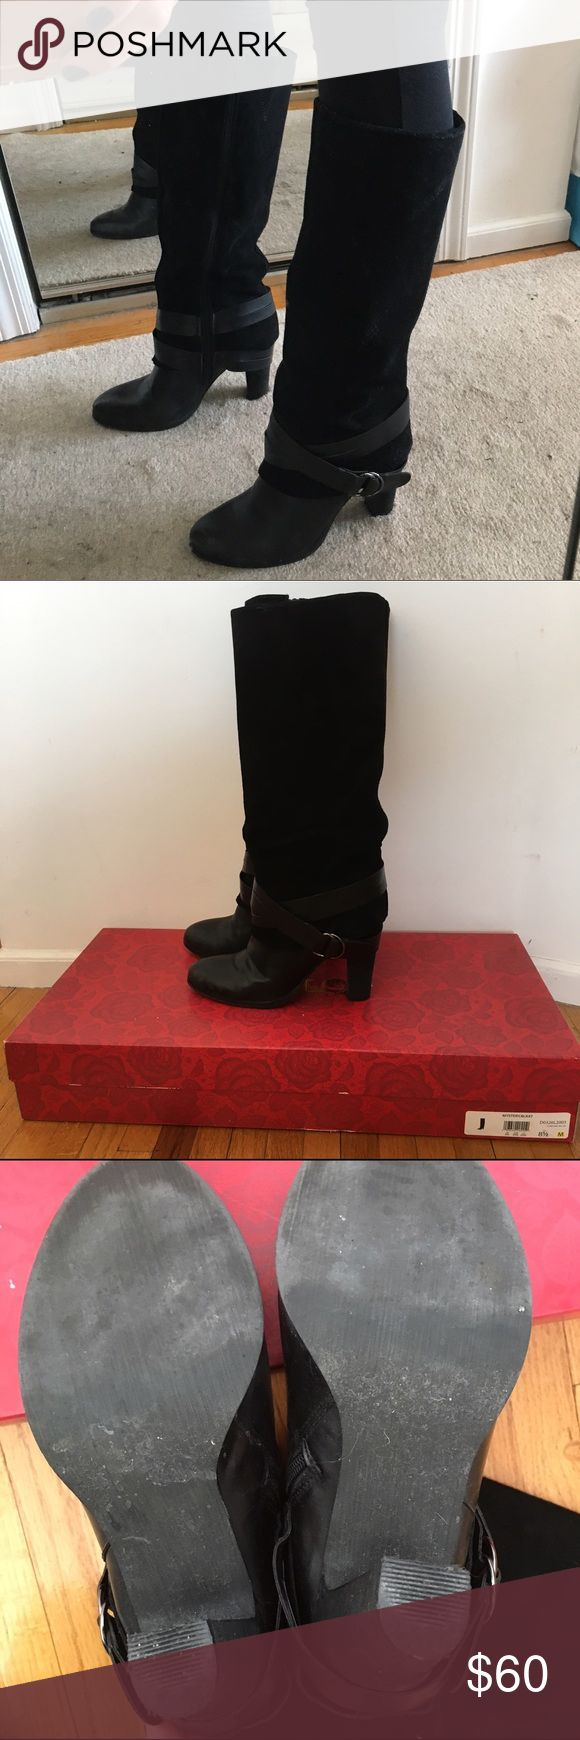 Black heeled boots Black suede heeled boots. Features ankle buckle and inside leg zipper closures. Size 8.5. Slightly worn soles and scuffed front (pictured). Carlos Santana Shoes Heeled Boots